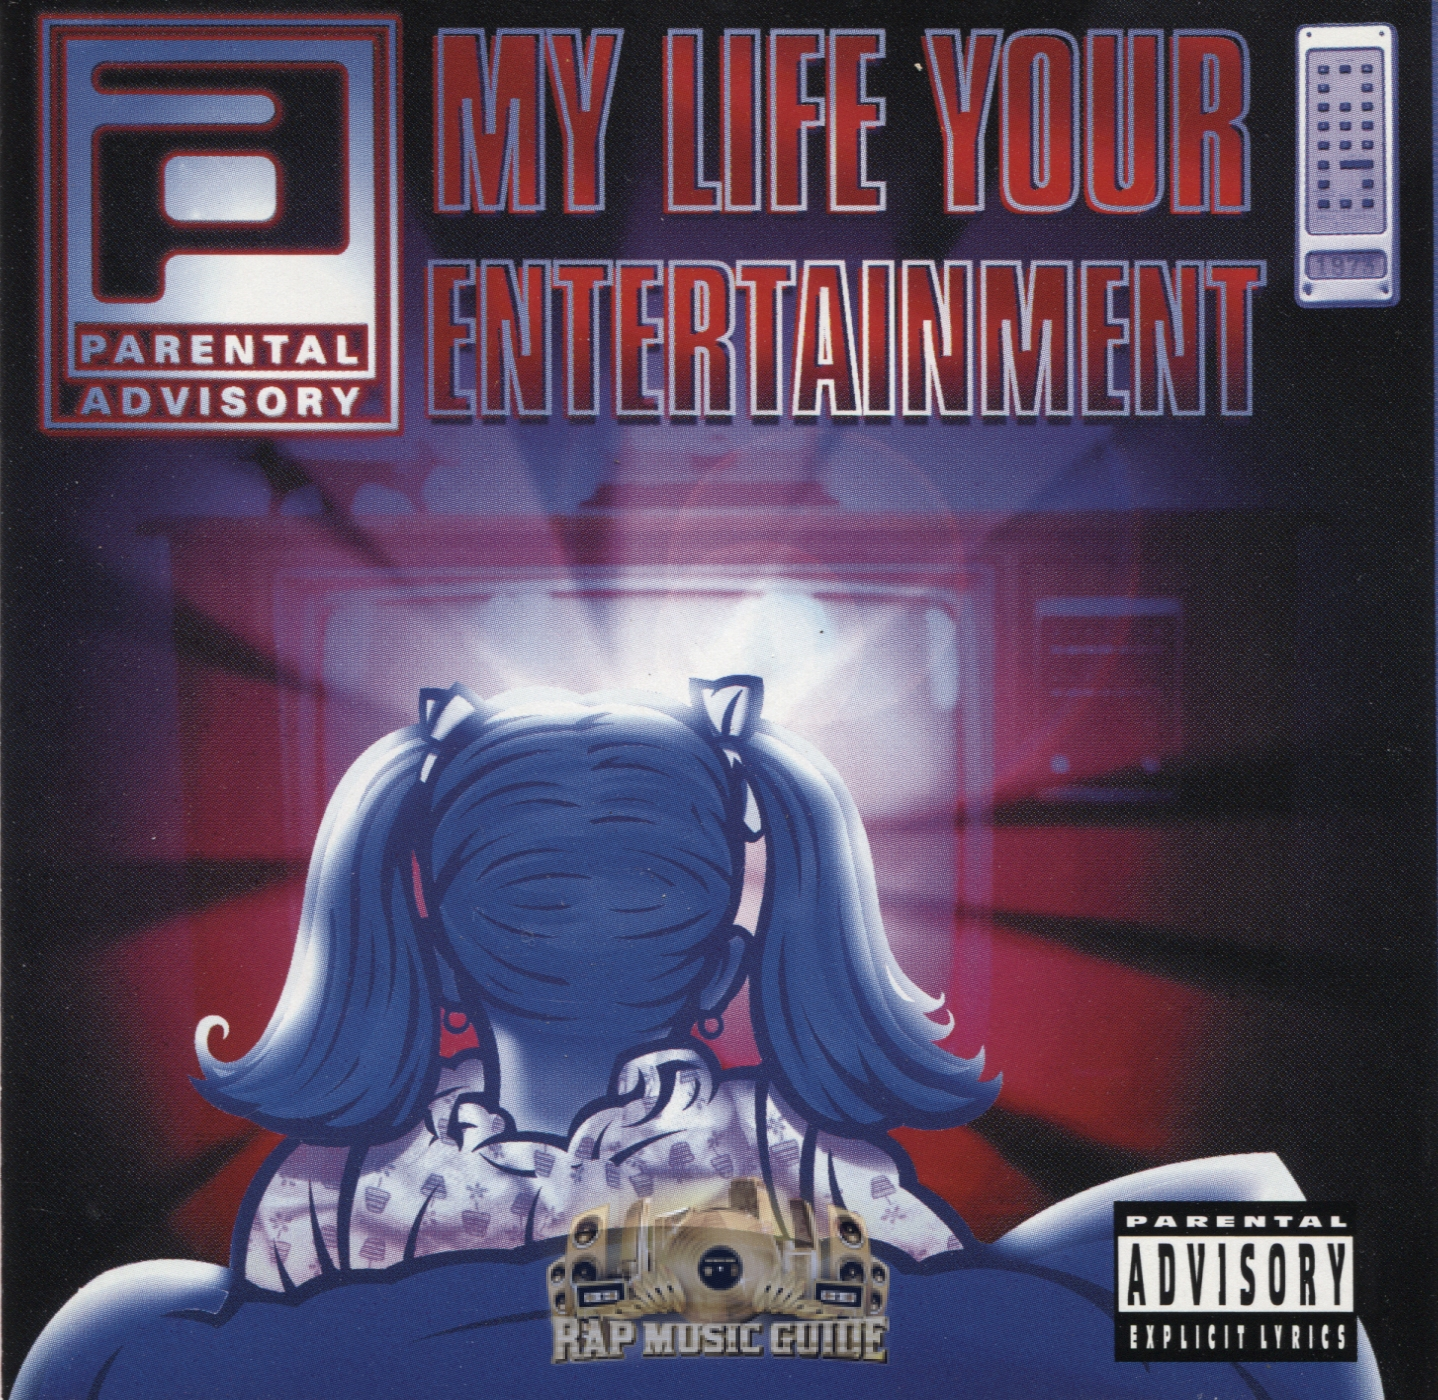 the issue of paternal advisory in music Straight outta compton was one of the first records to receive a parental advisory the world's most dangerous group music industry has made the issue much.